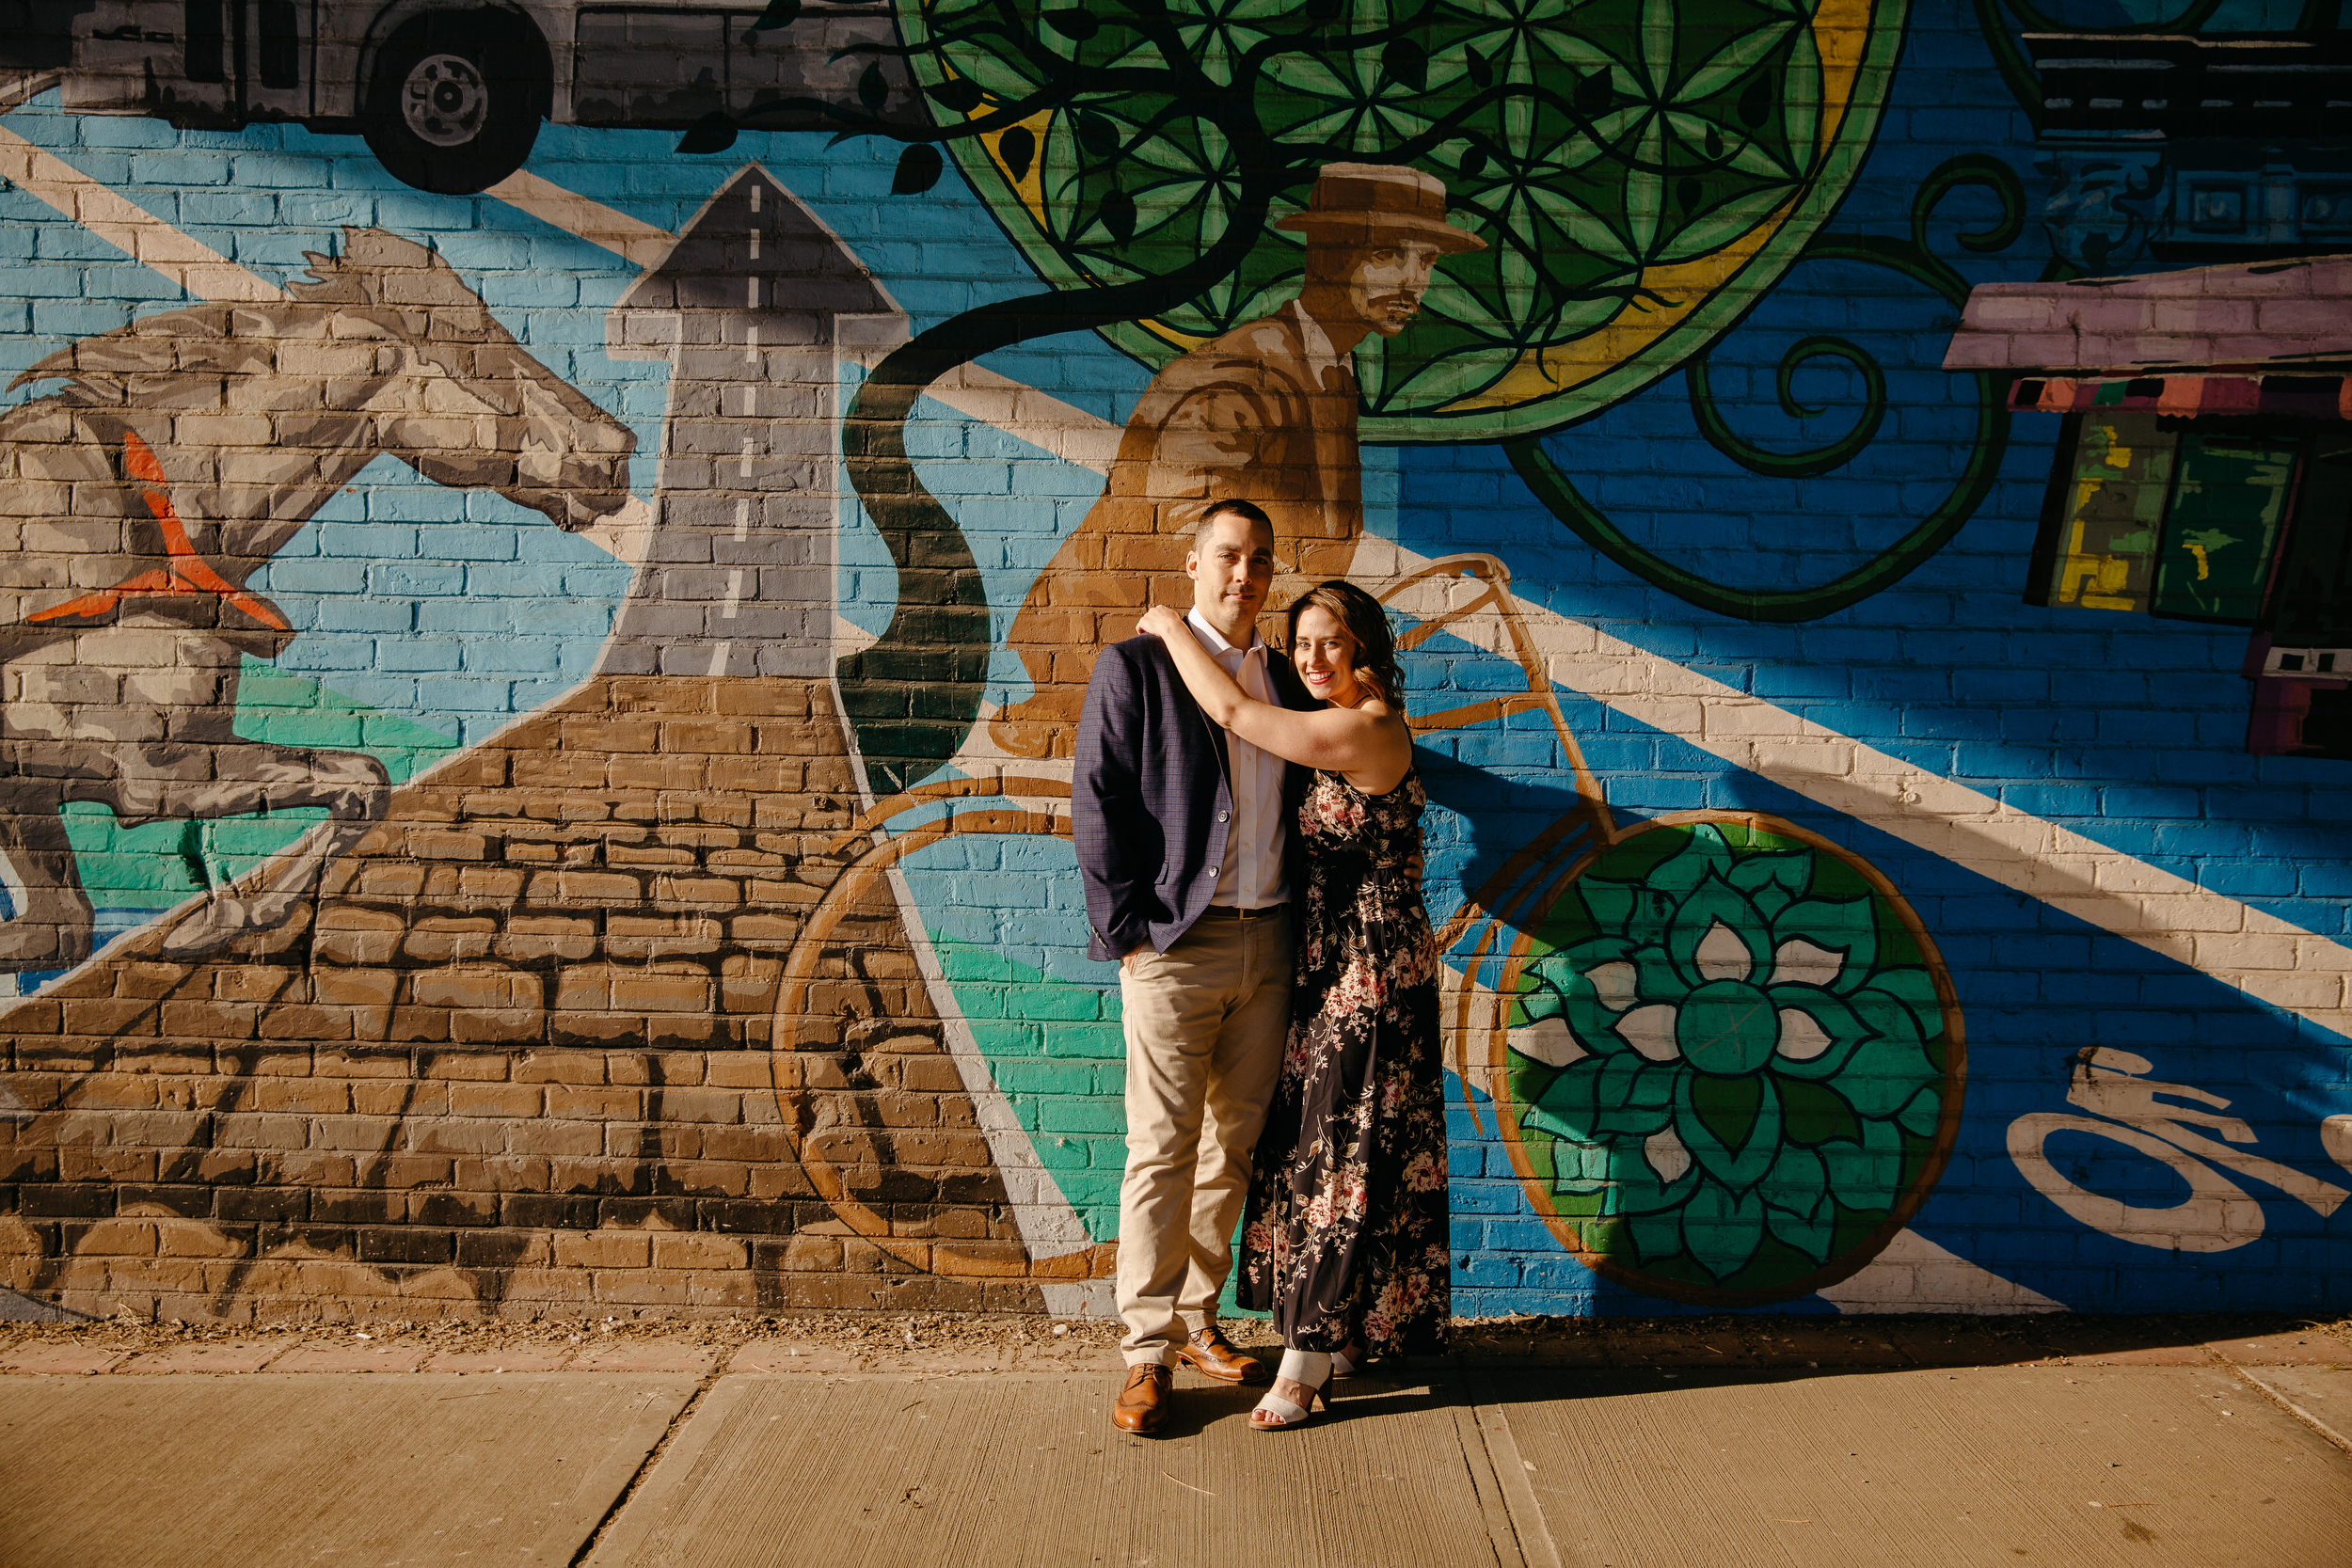 brooklyn_engagement_session_location_2.JPG